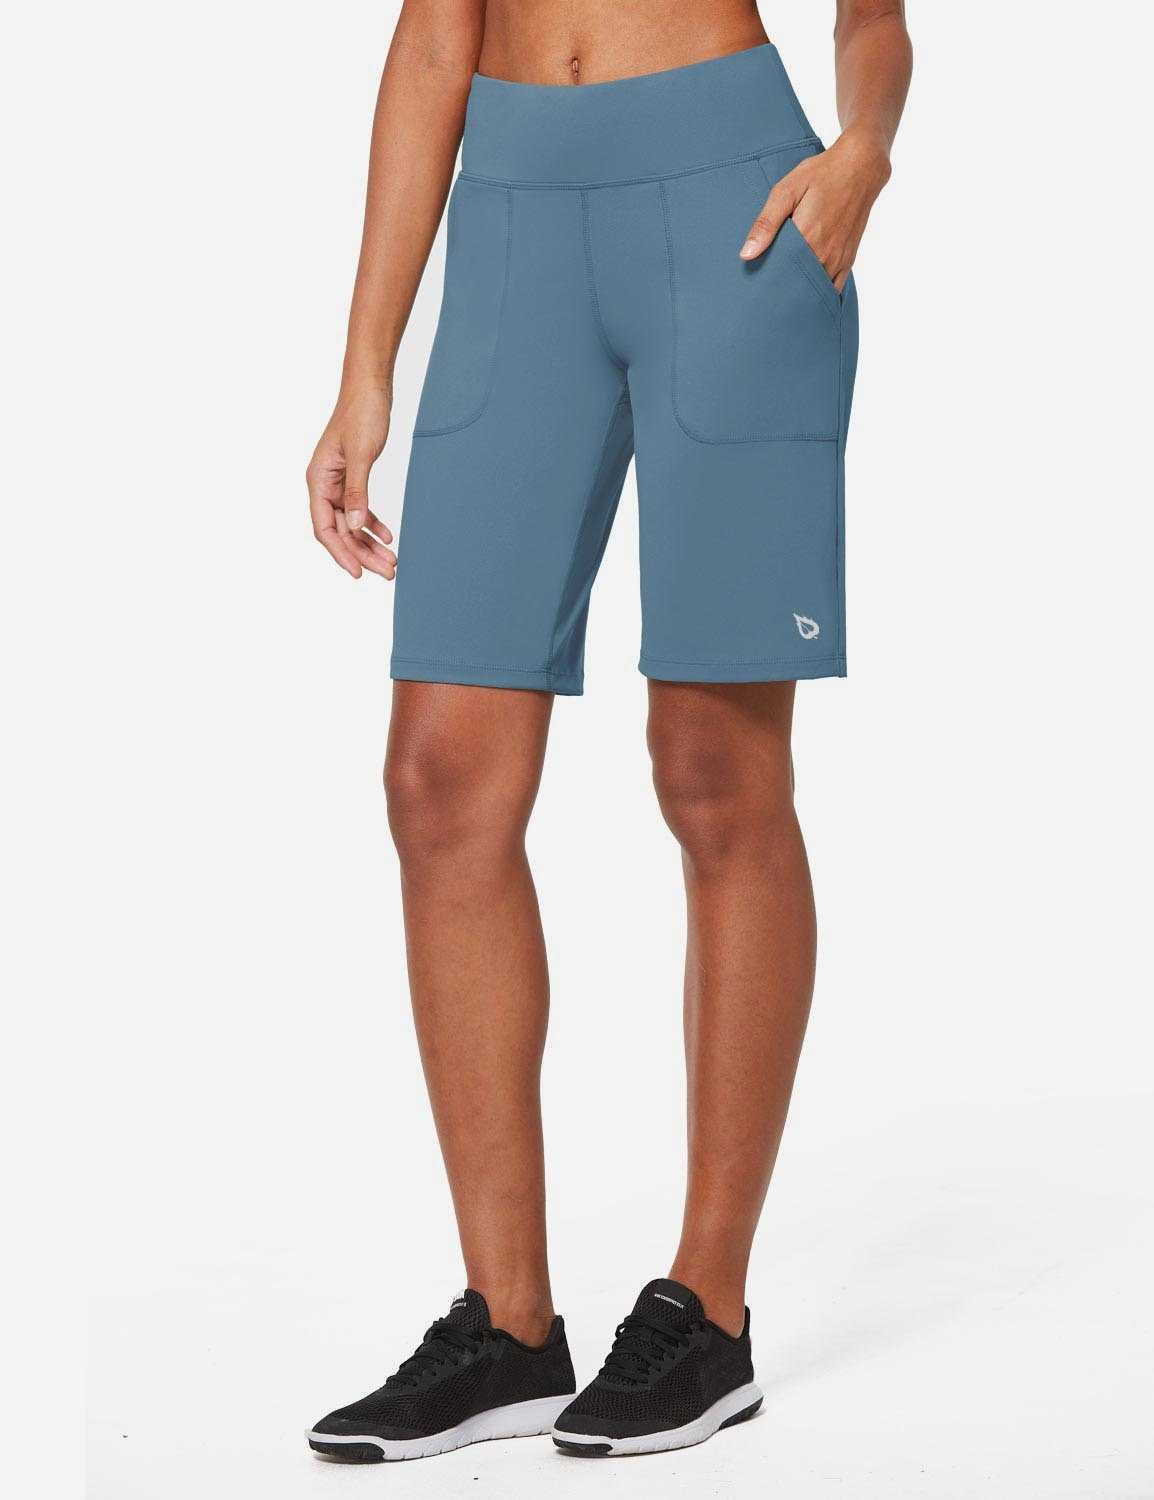 Baleaf Womens Mid Rise Tummy Control Pocketed Lounge Bermuda Shorts Baleaf Womens Mid Rise Tummy Control Pocketed Lounge Bermuda Shorts Niagara side